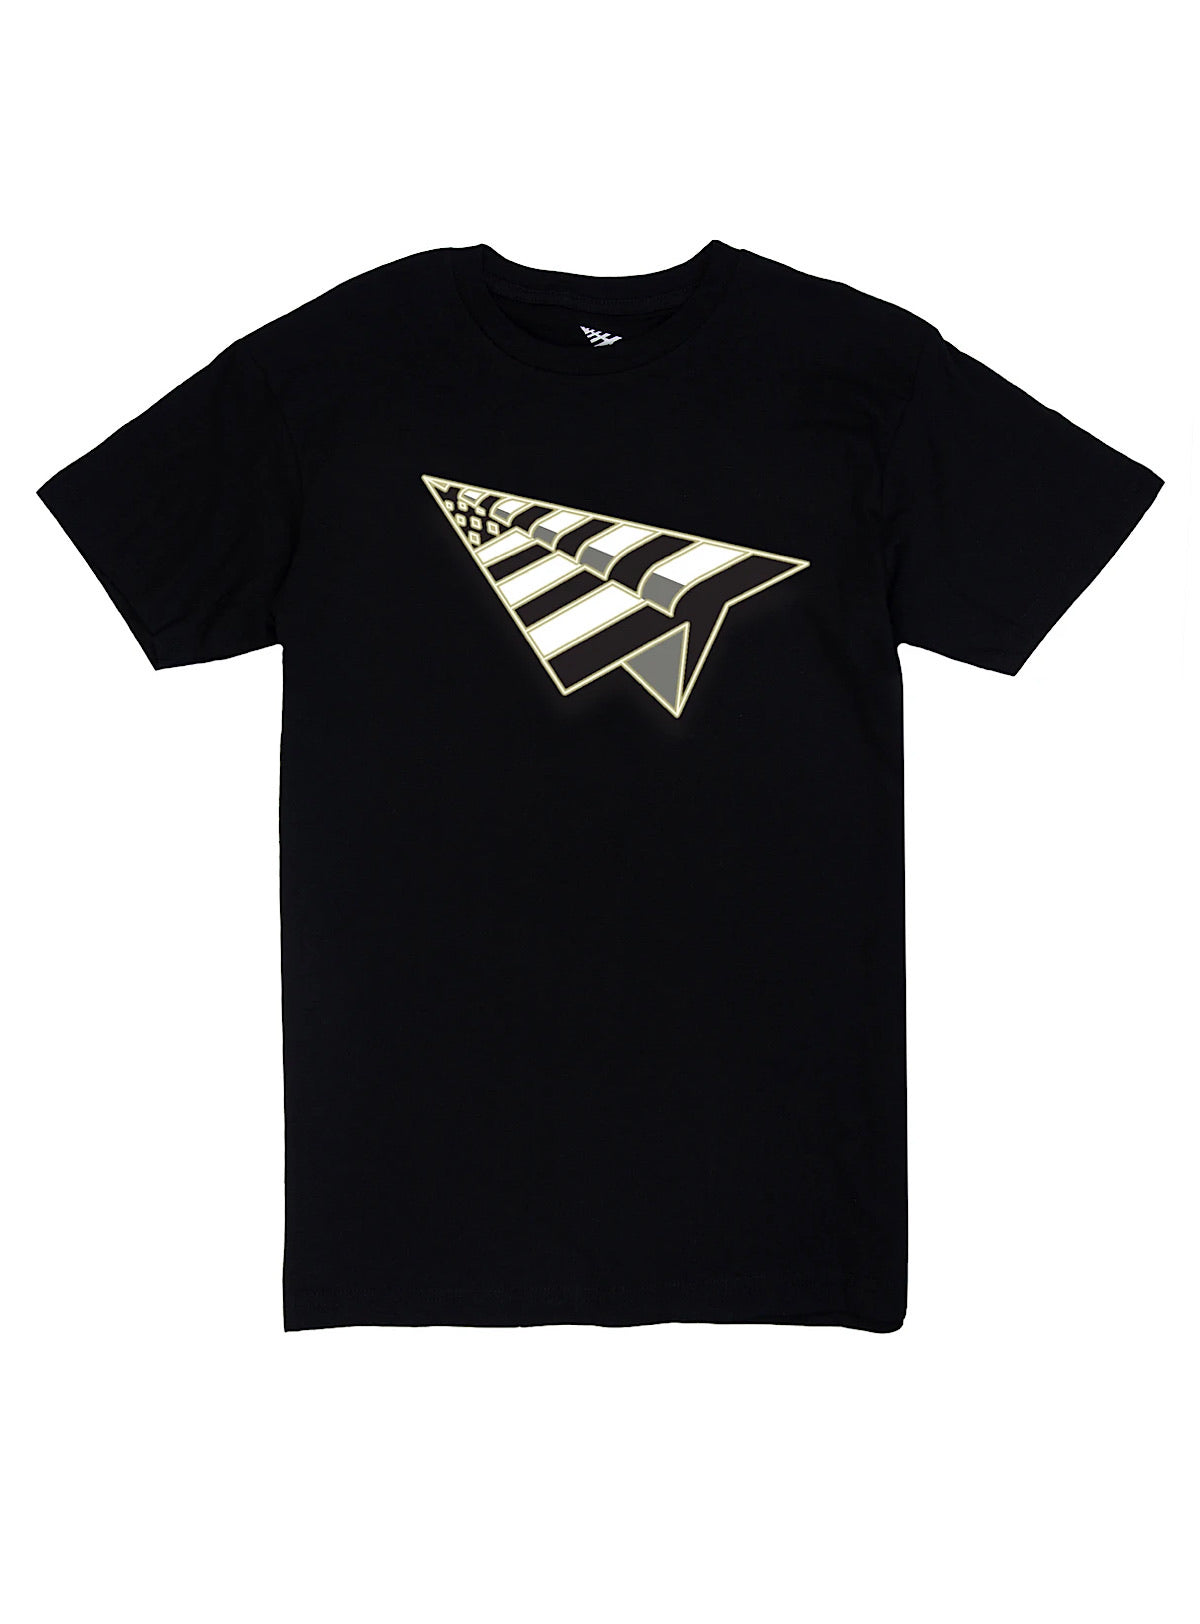 Paper Plane T-Shirt - Logo - Black And Gold - 100930